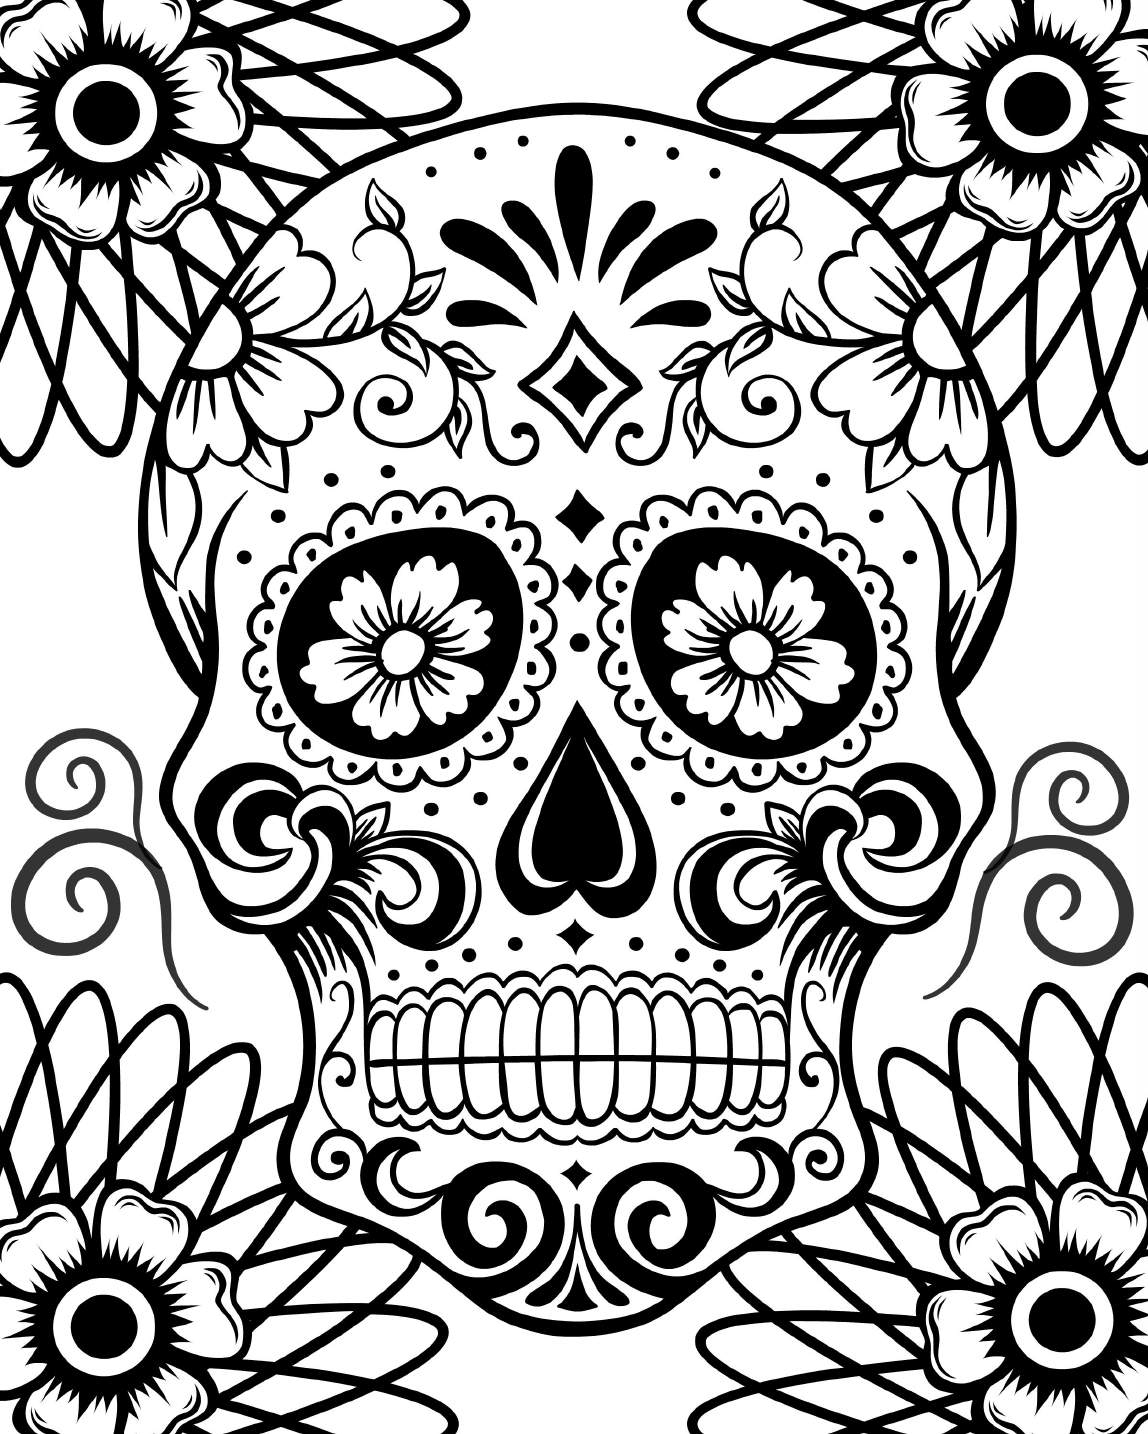 coloring printable day of the dead free printable day of the dead coloring pages best the coloring dead of day printable